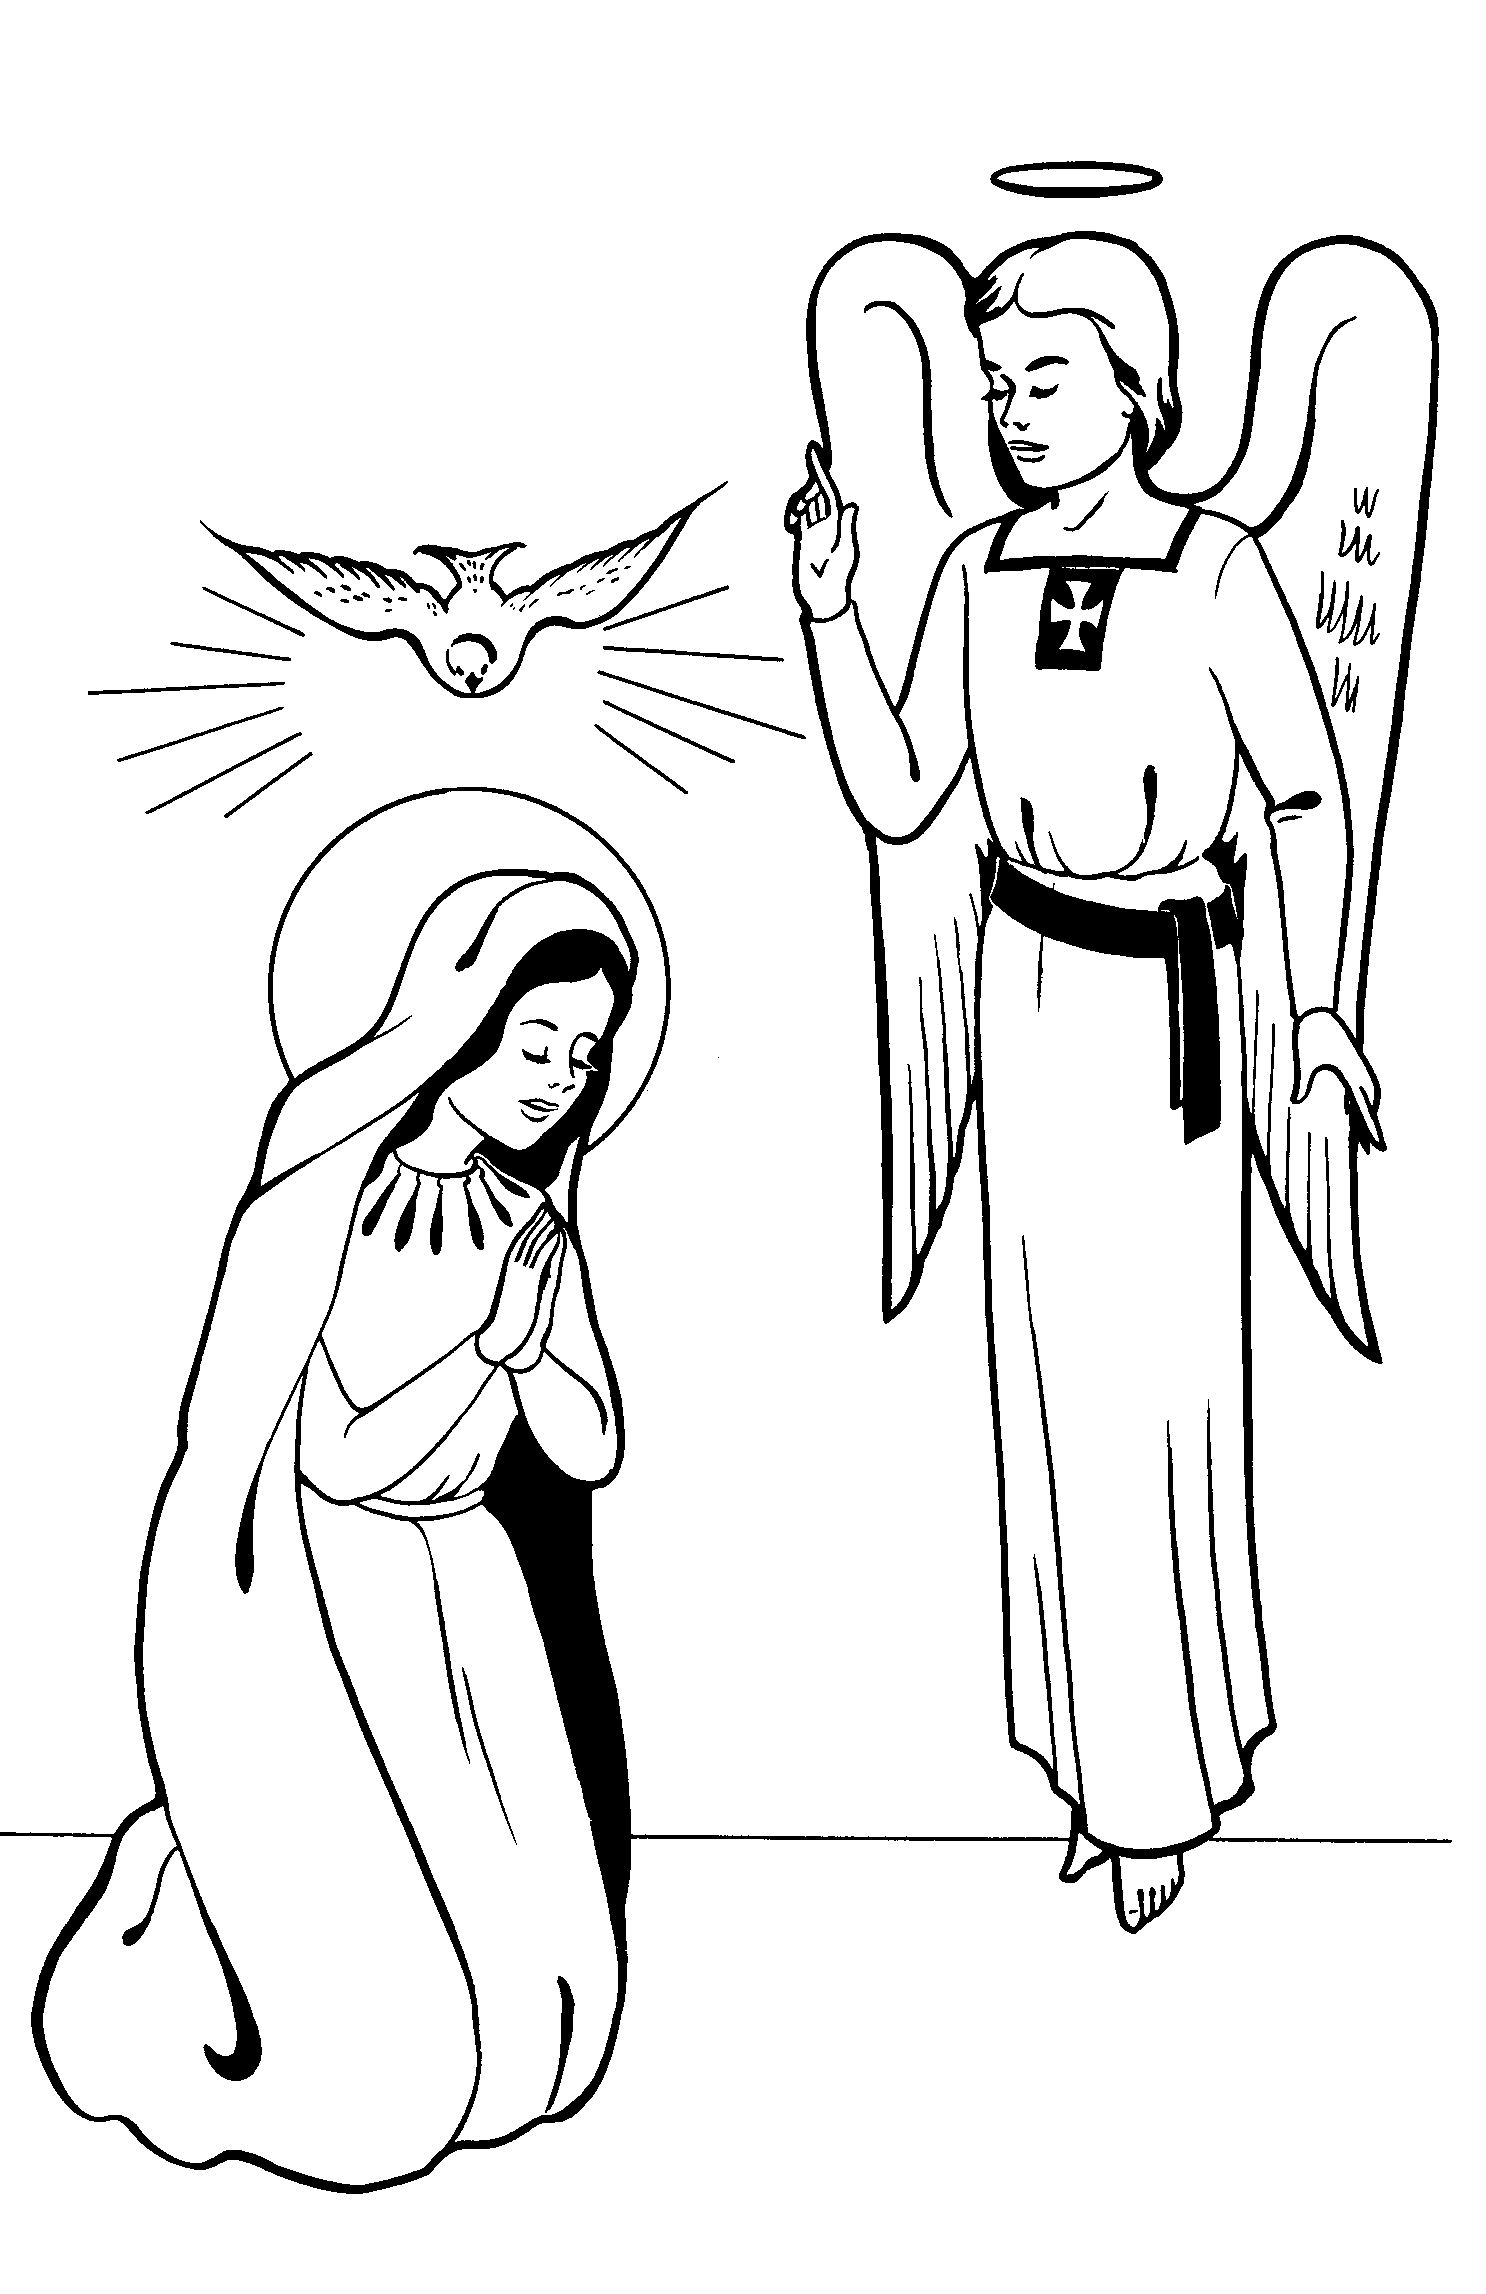 Free Annunciation Cliparts, Download Free Clip Art, Free.